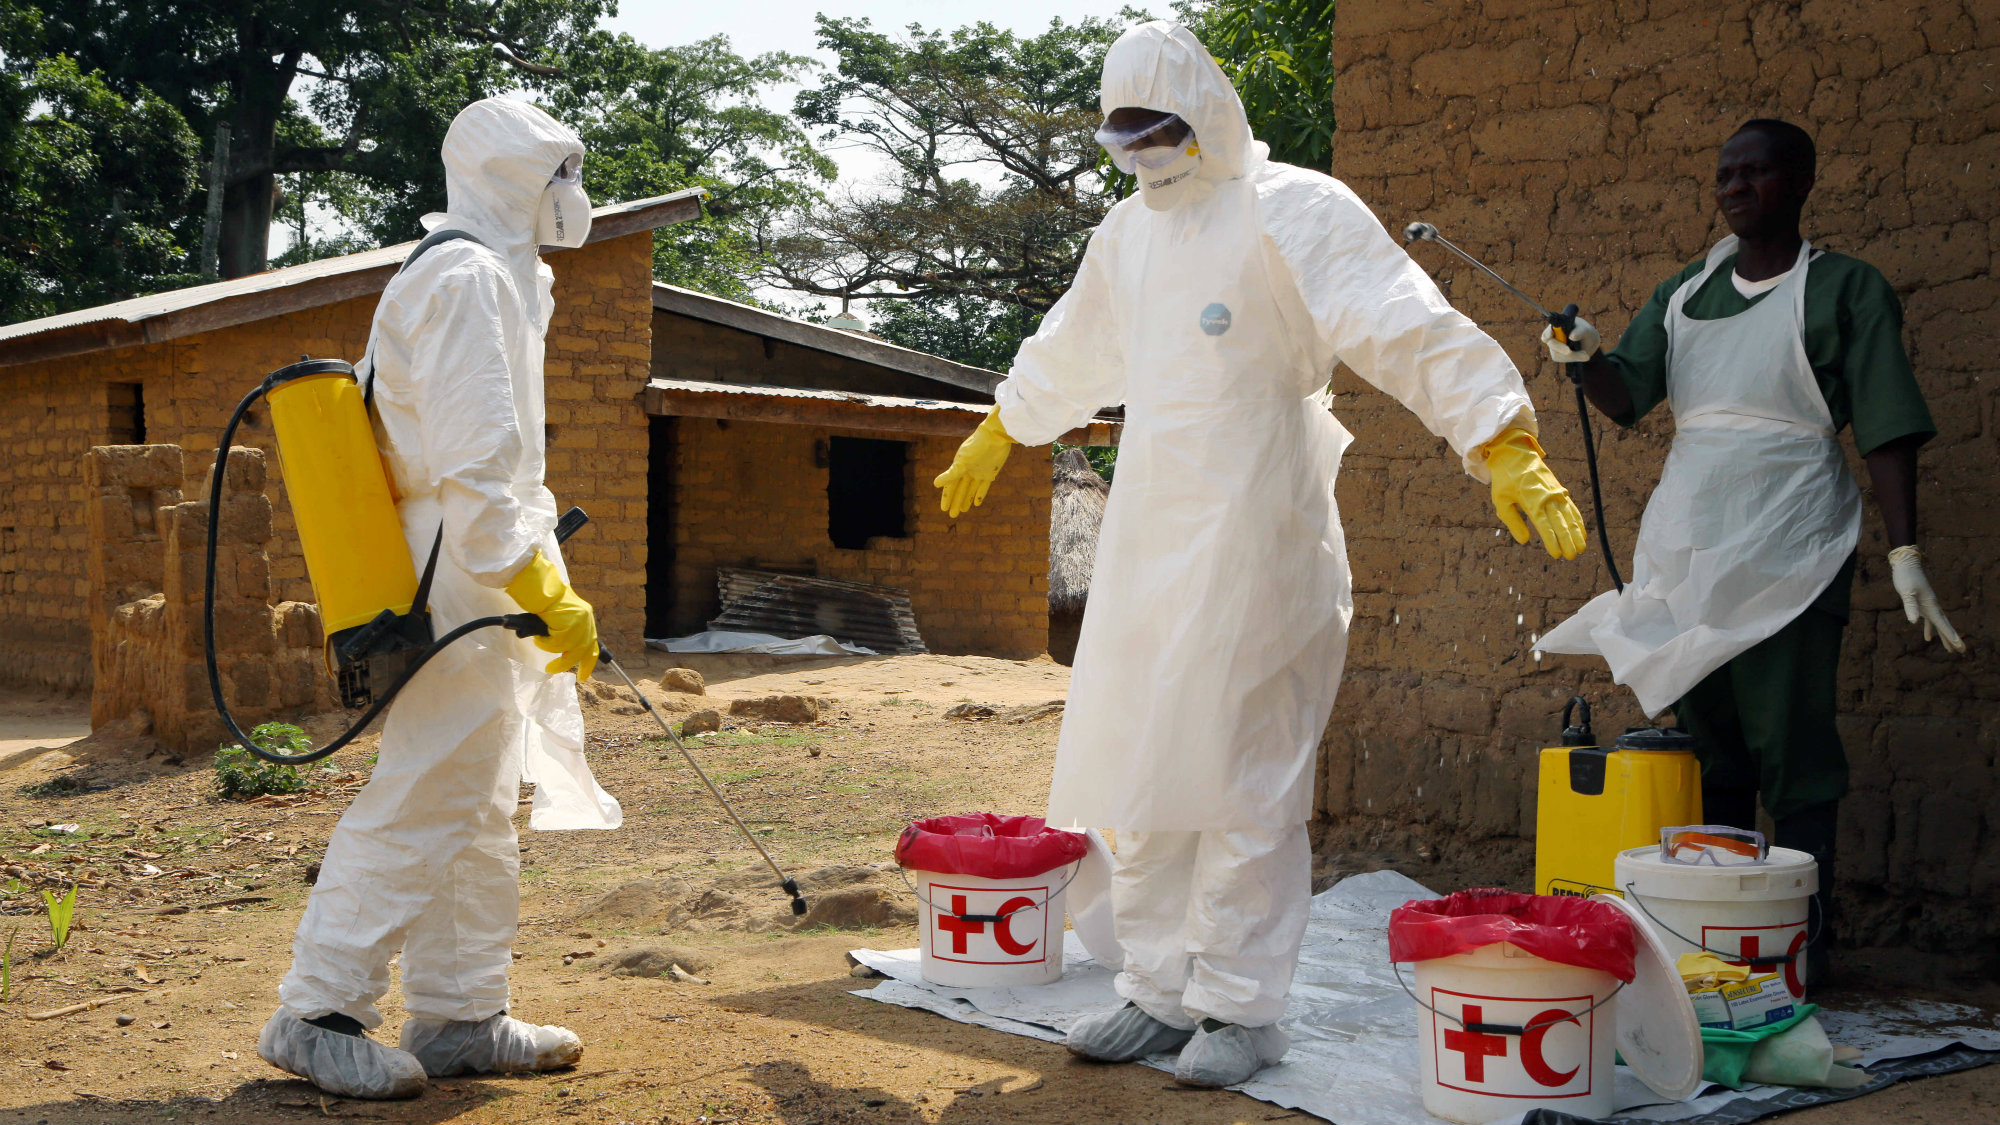 World Health Organization  says Ebola outbreak has spread to a Congo city